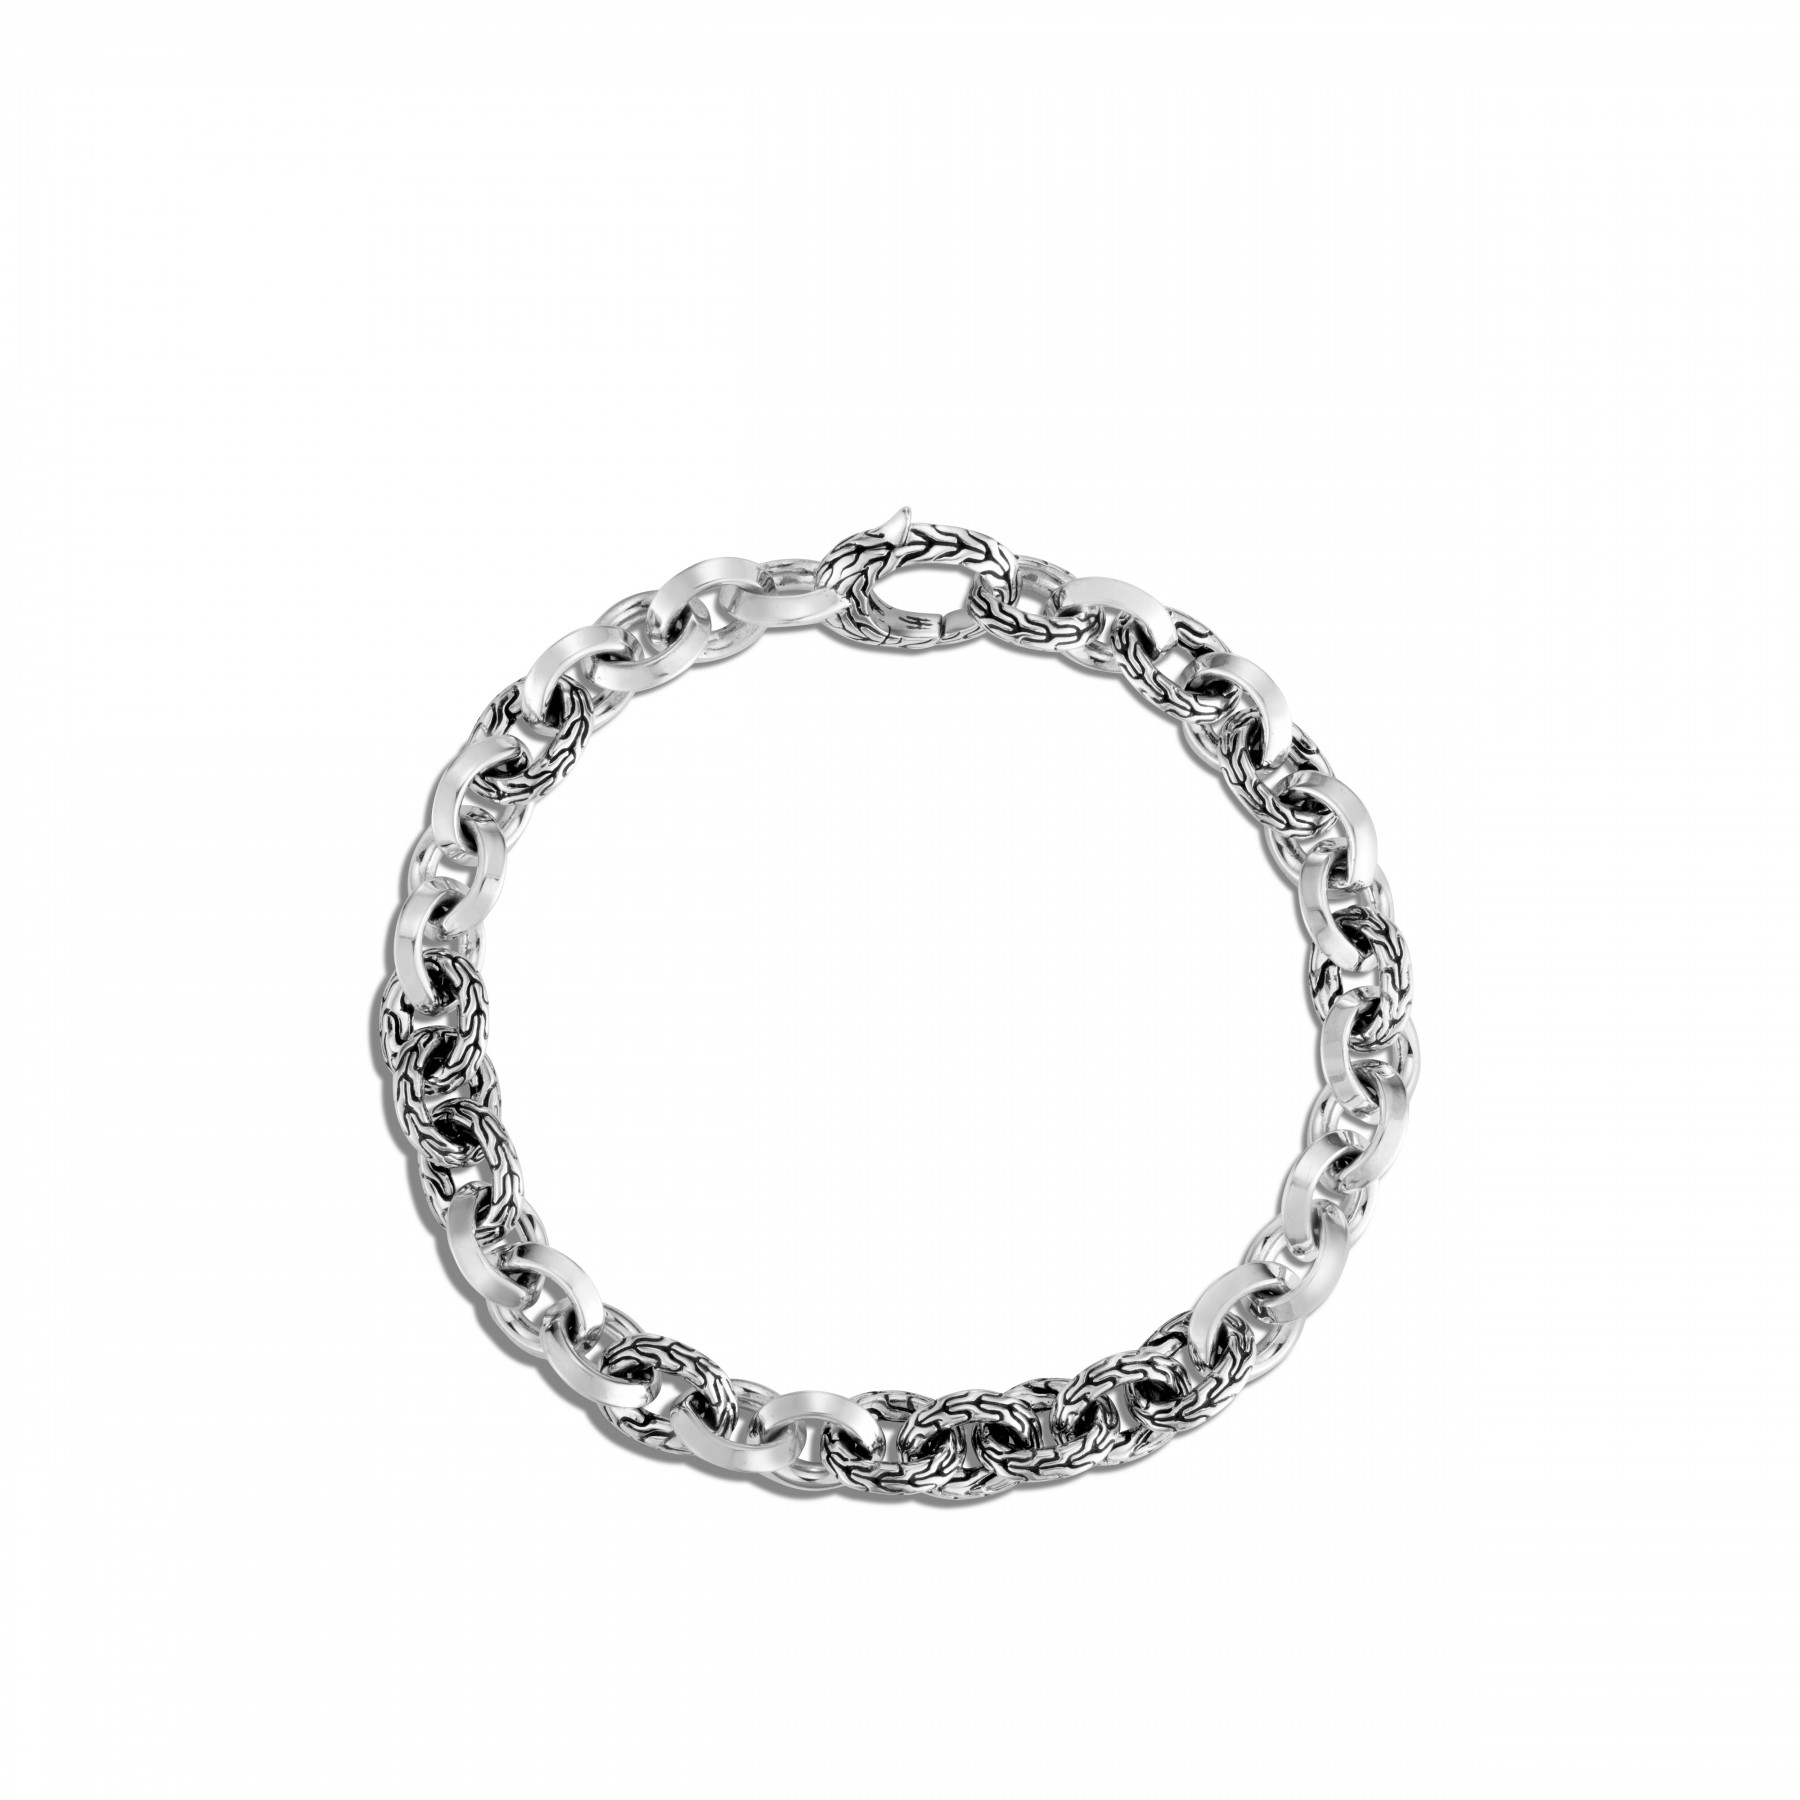 John Hardy Classic Chain Sterling Silver Link Bracelet flat view